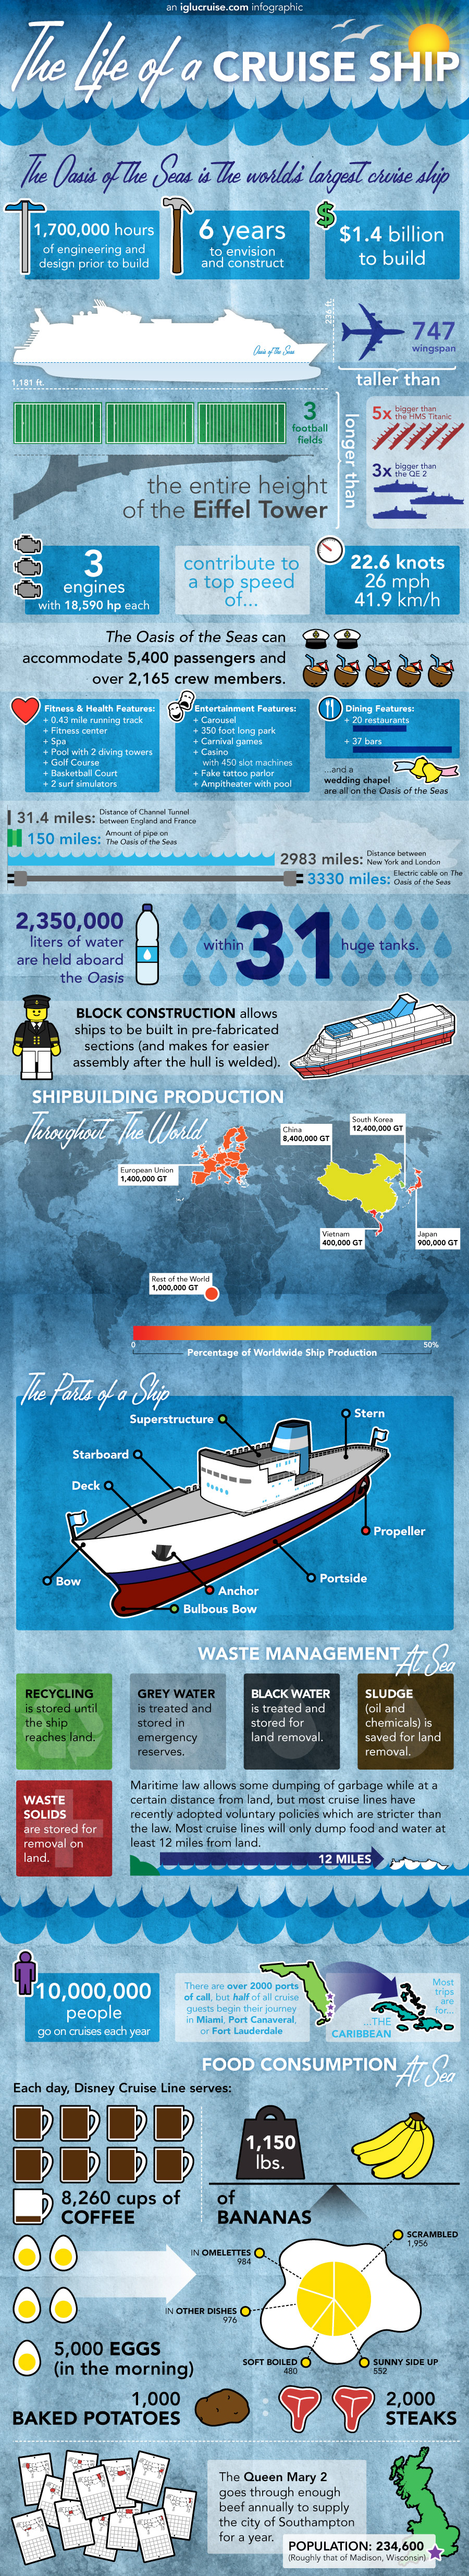 how big are cruise ships